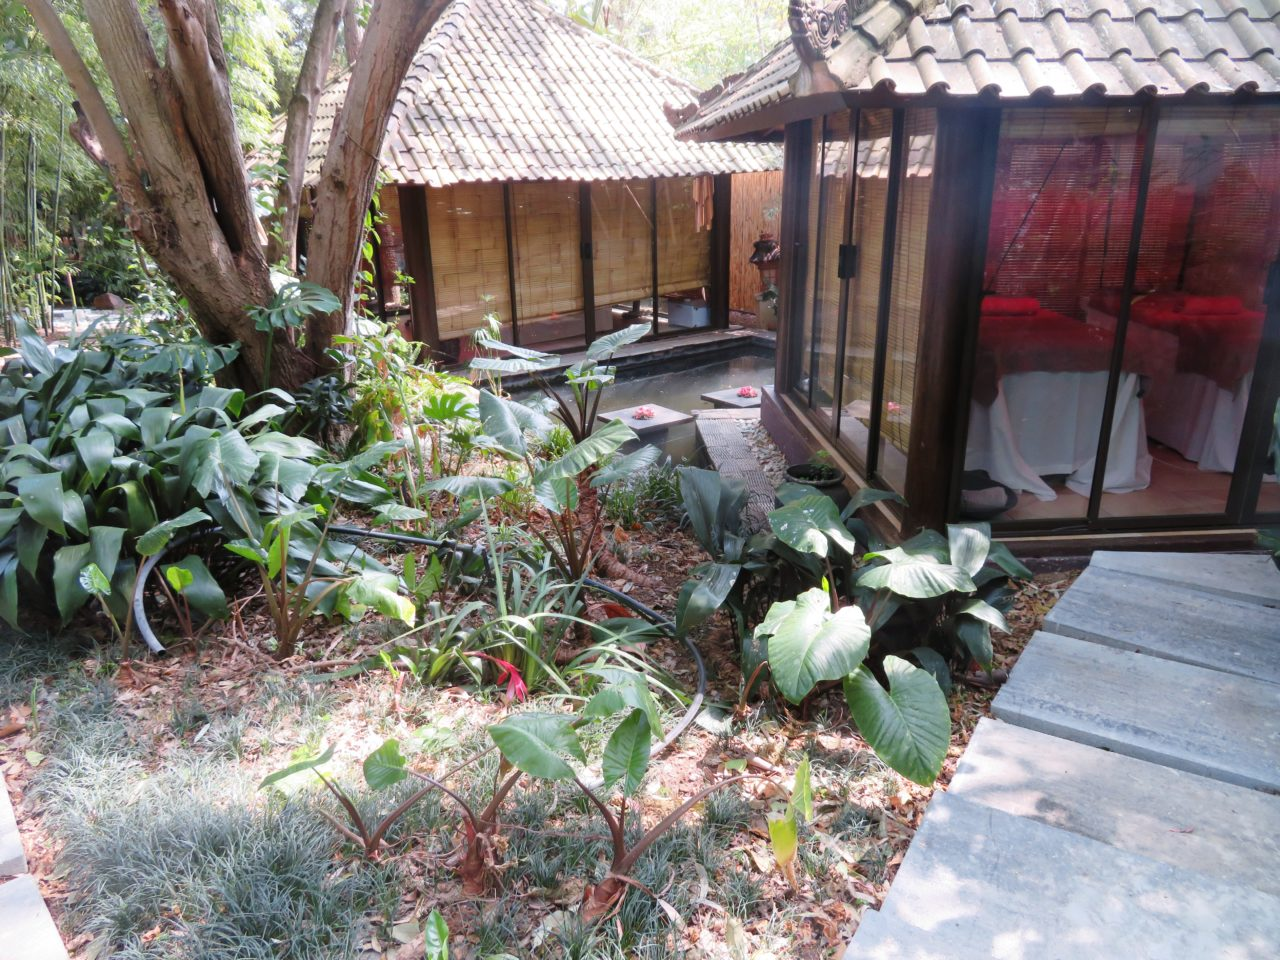 Fairlawns Boutique Hotel & Spa - Johannesburg, South Africa ! Massage Cabanas in the Balinese Garden of the Spa